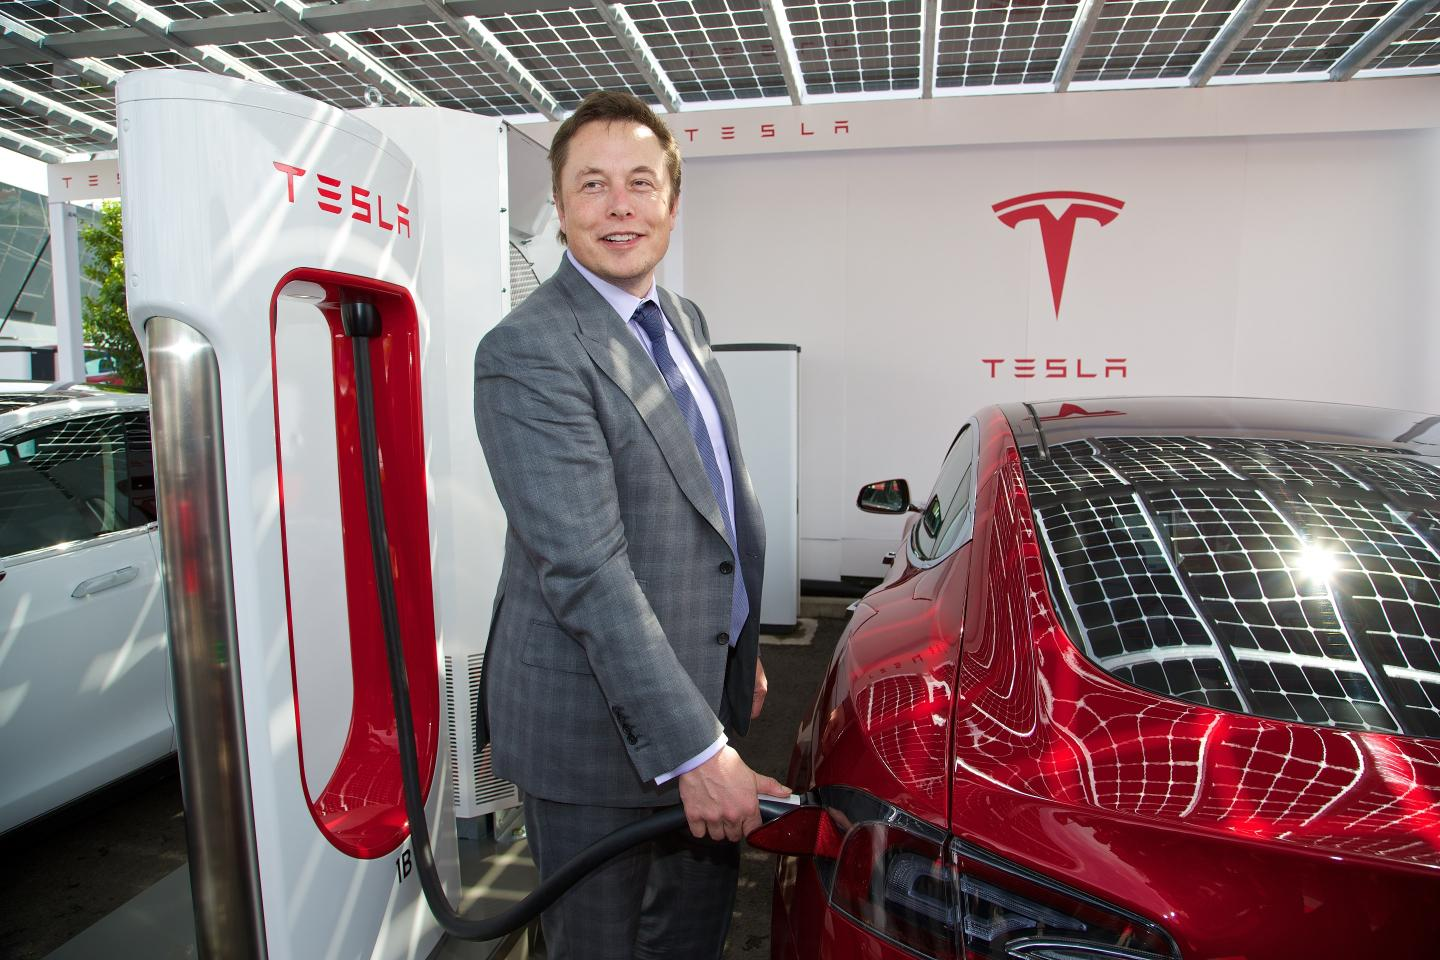 How did Elon Musk make his fortune before investing in Tesla?